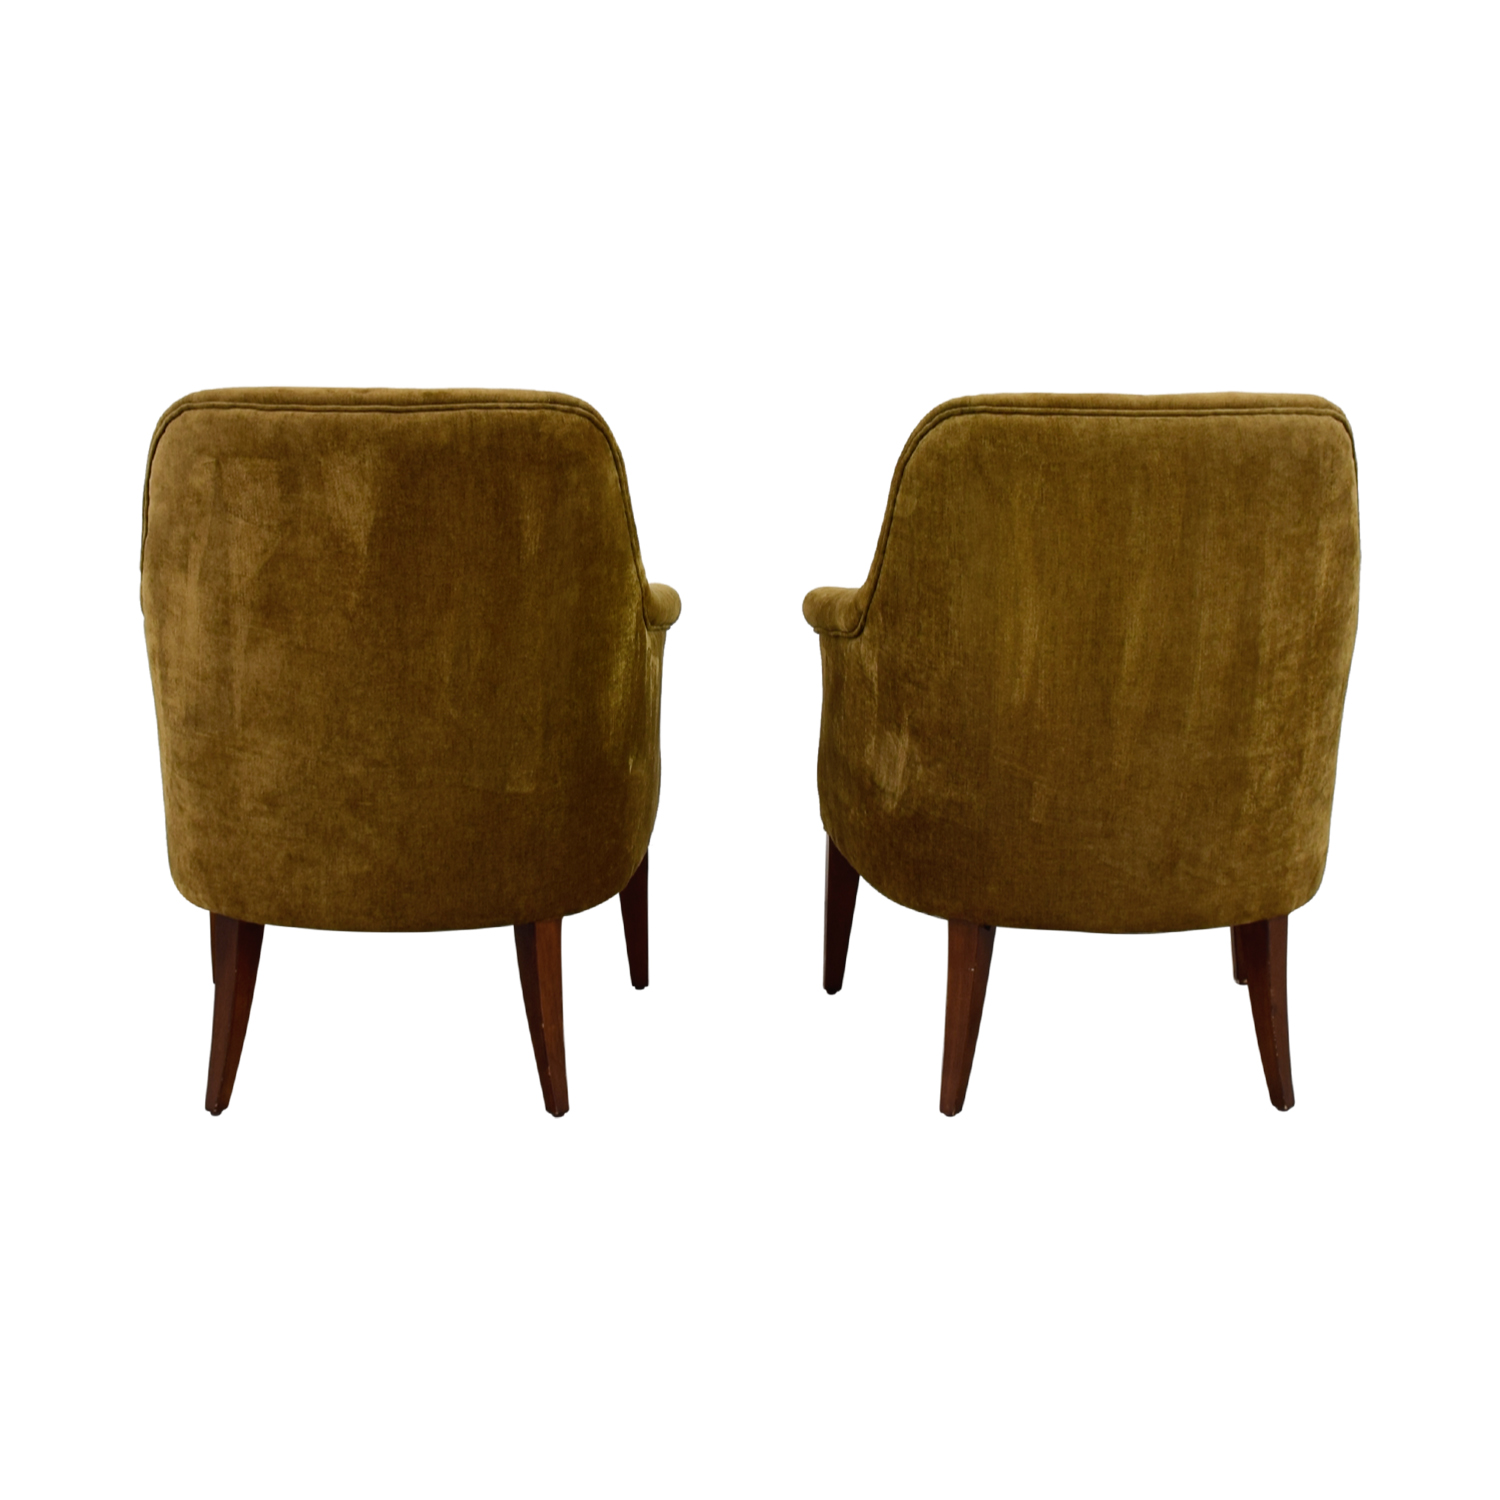 Pier 1 Imports Pier 1 Imports Brown Upholstered Accent Chairs